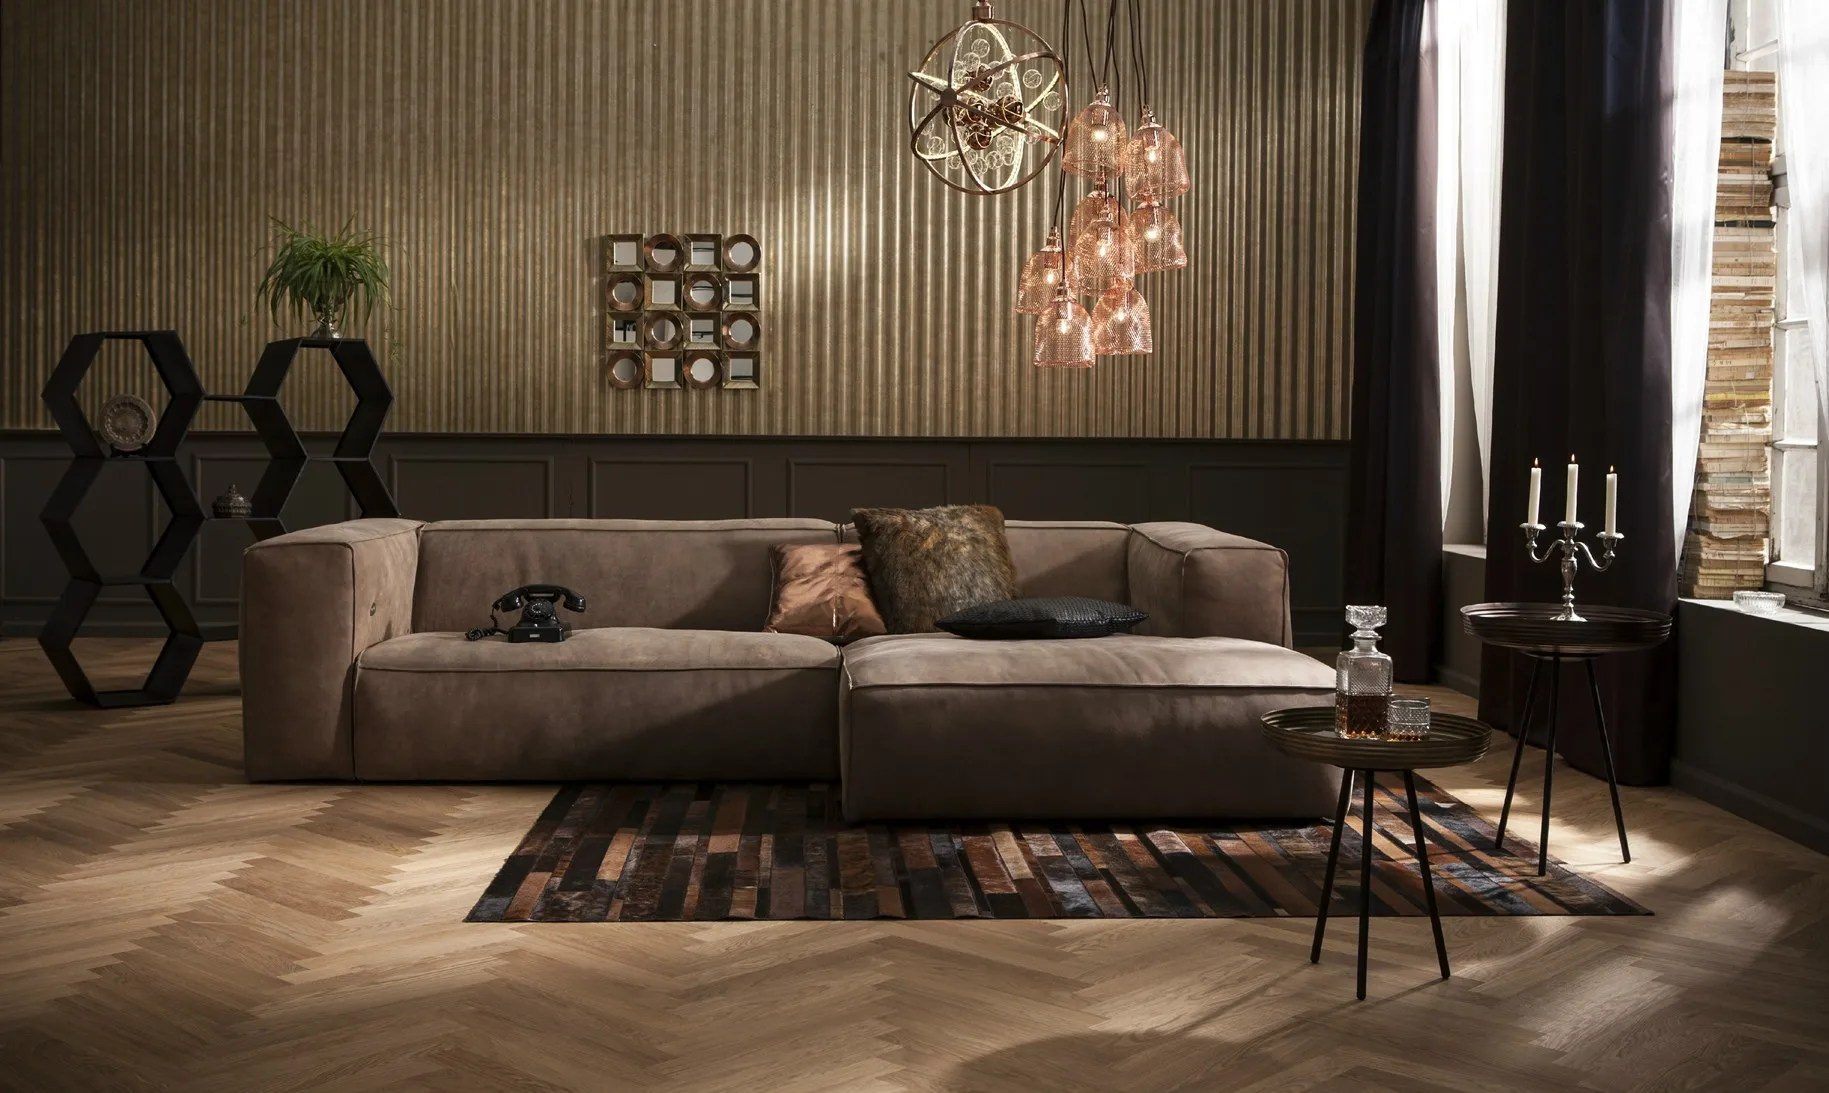 Kare Designe Kare Design At Imm Cologne